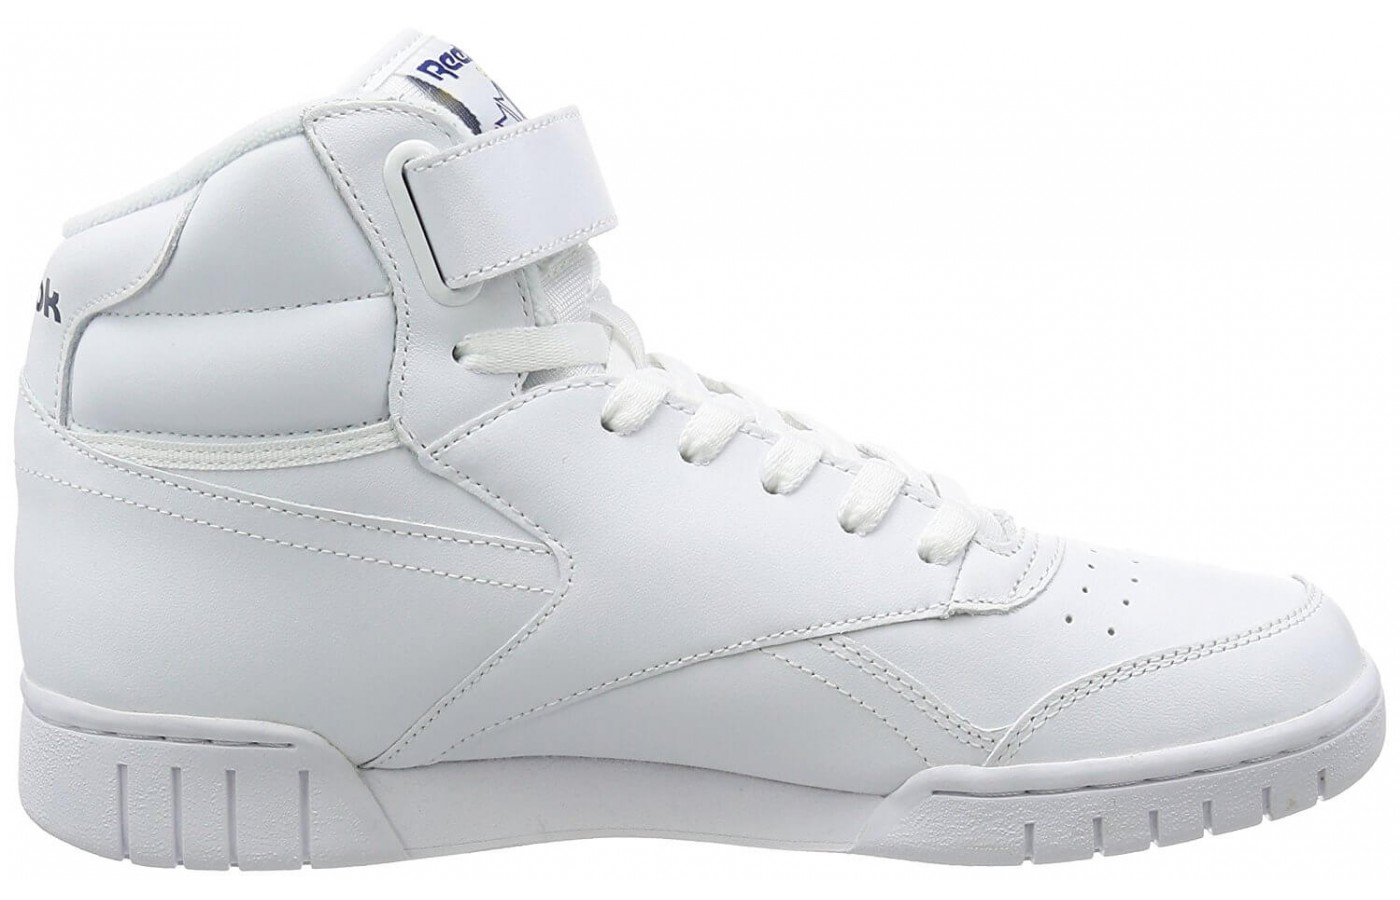 The Reebok Ex-O-Fit Hi features a leather upper